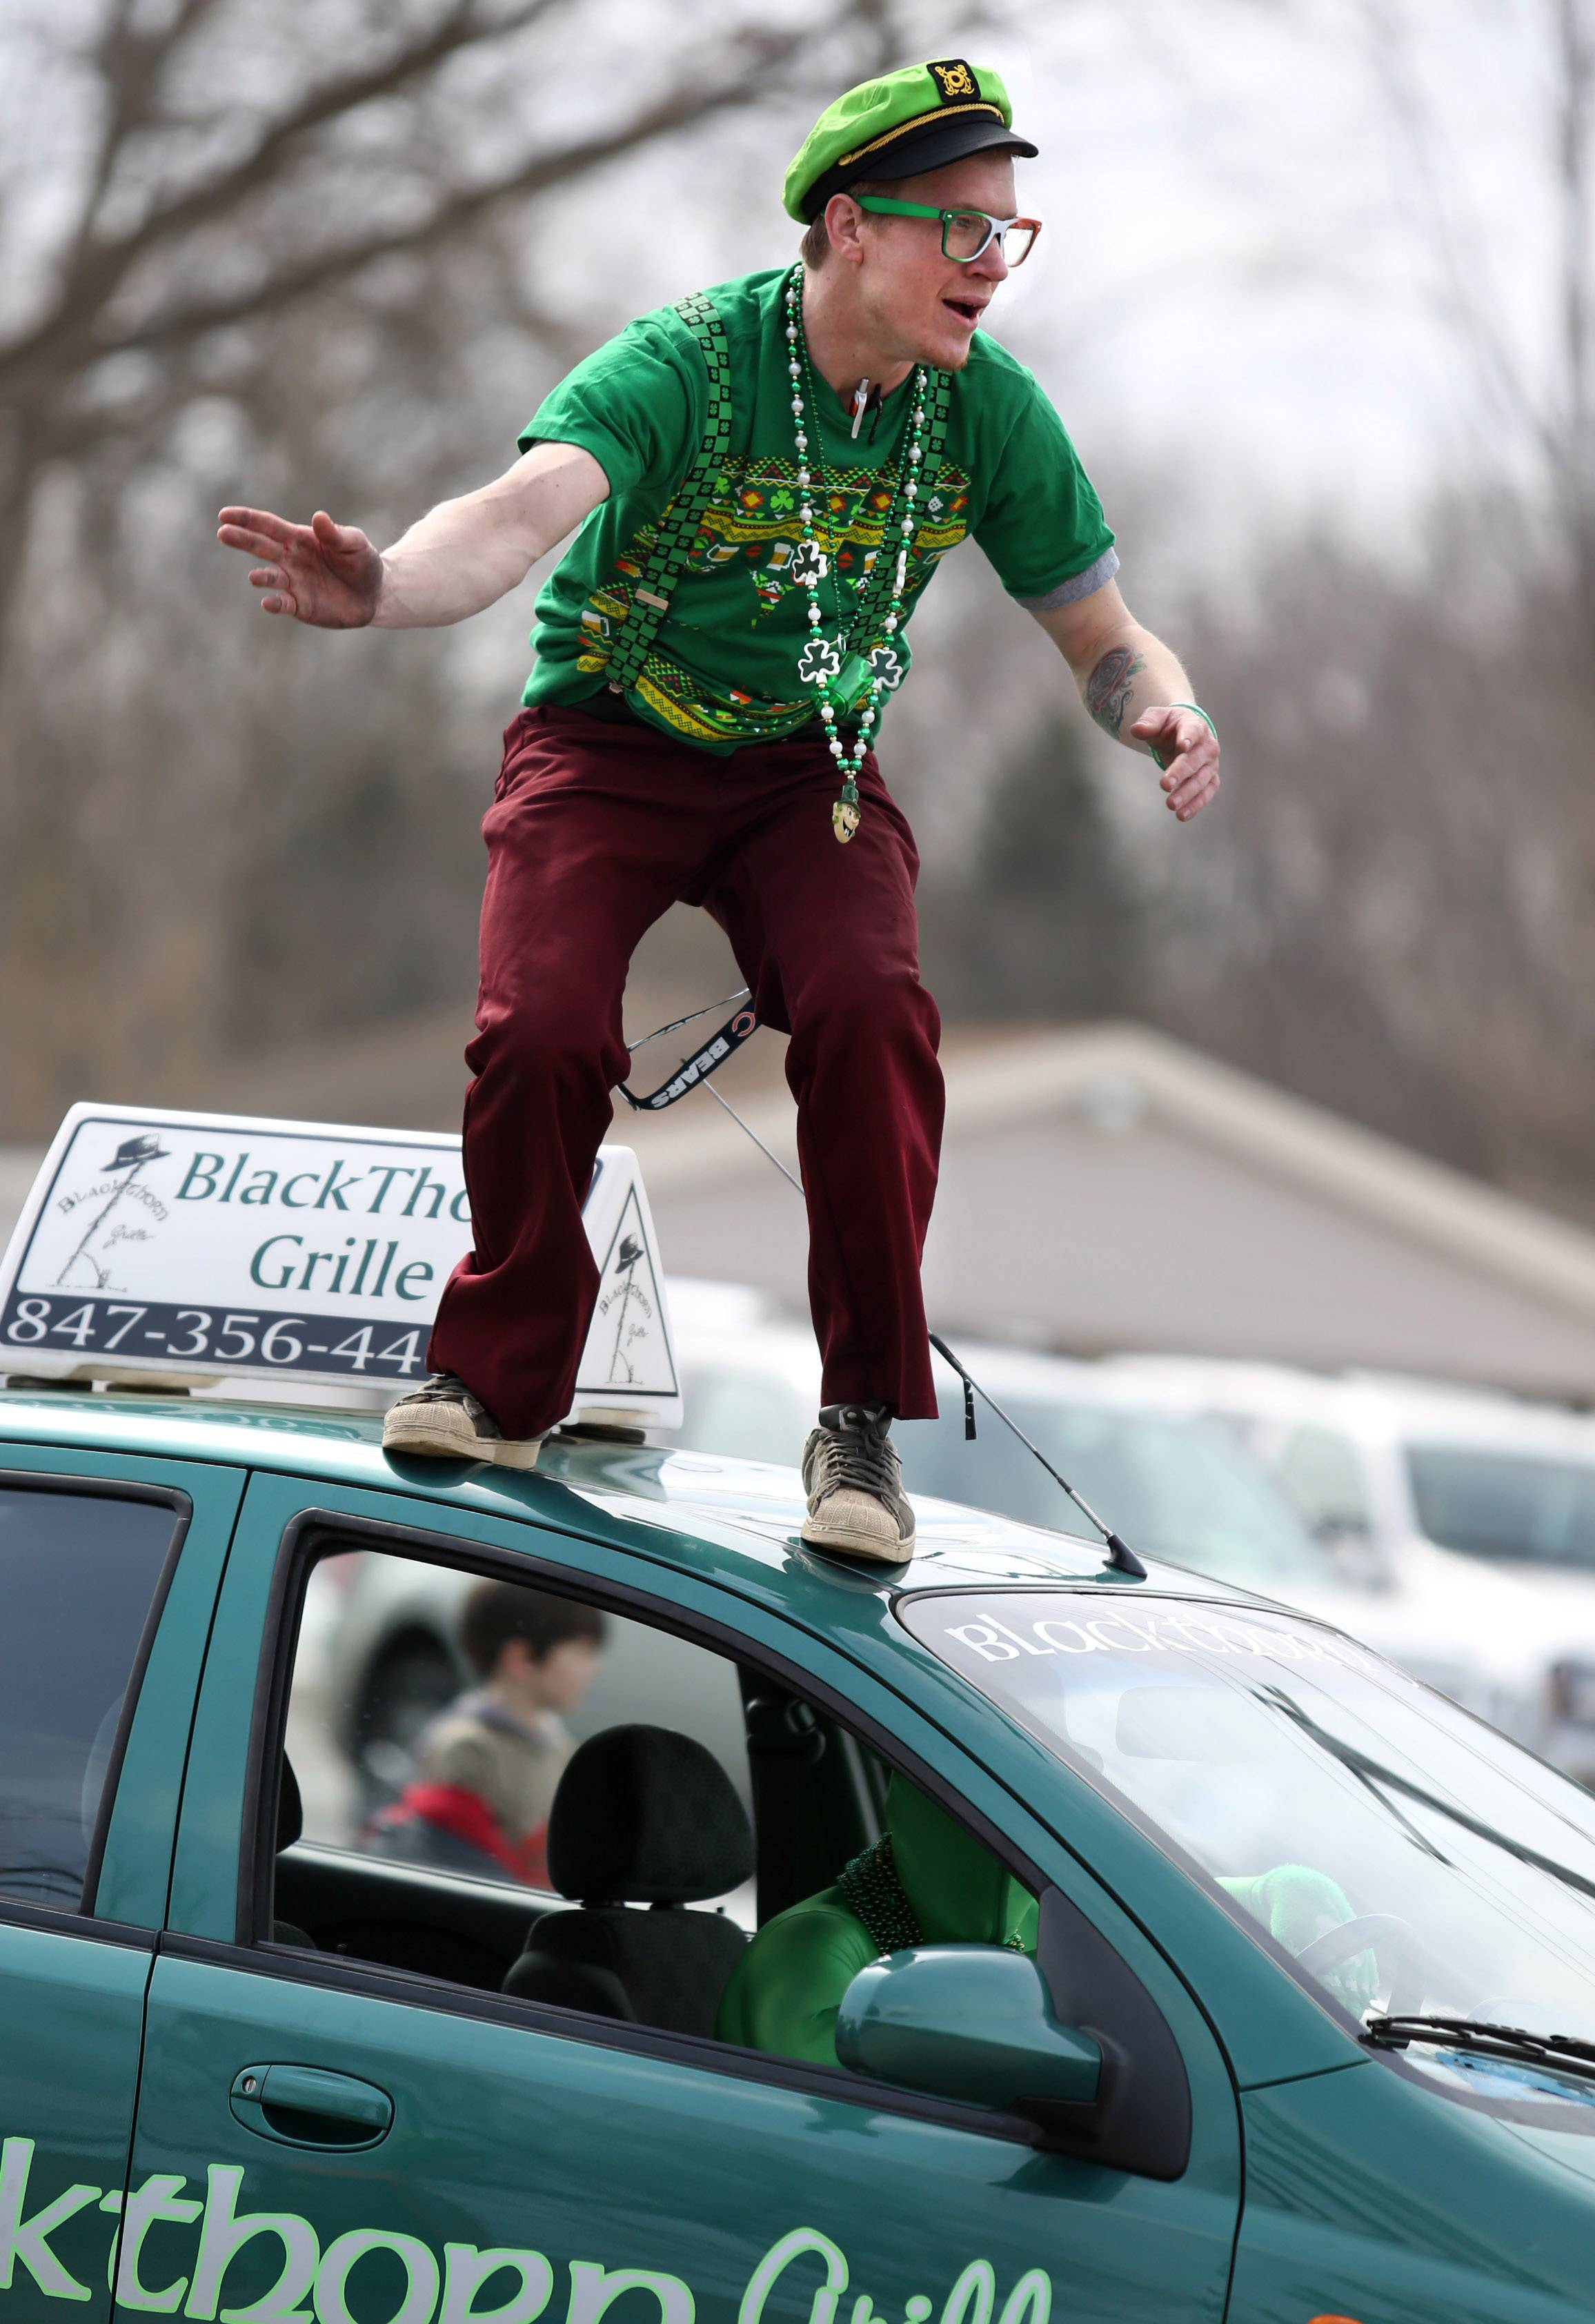 Patrick McLaughlin car surfs on Blackthorn Grille's car with Ryan Coy driving in the Village of Lake Villa's St. Patrick's Day Parade on Saturday.